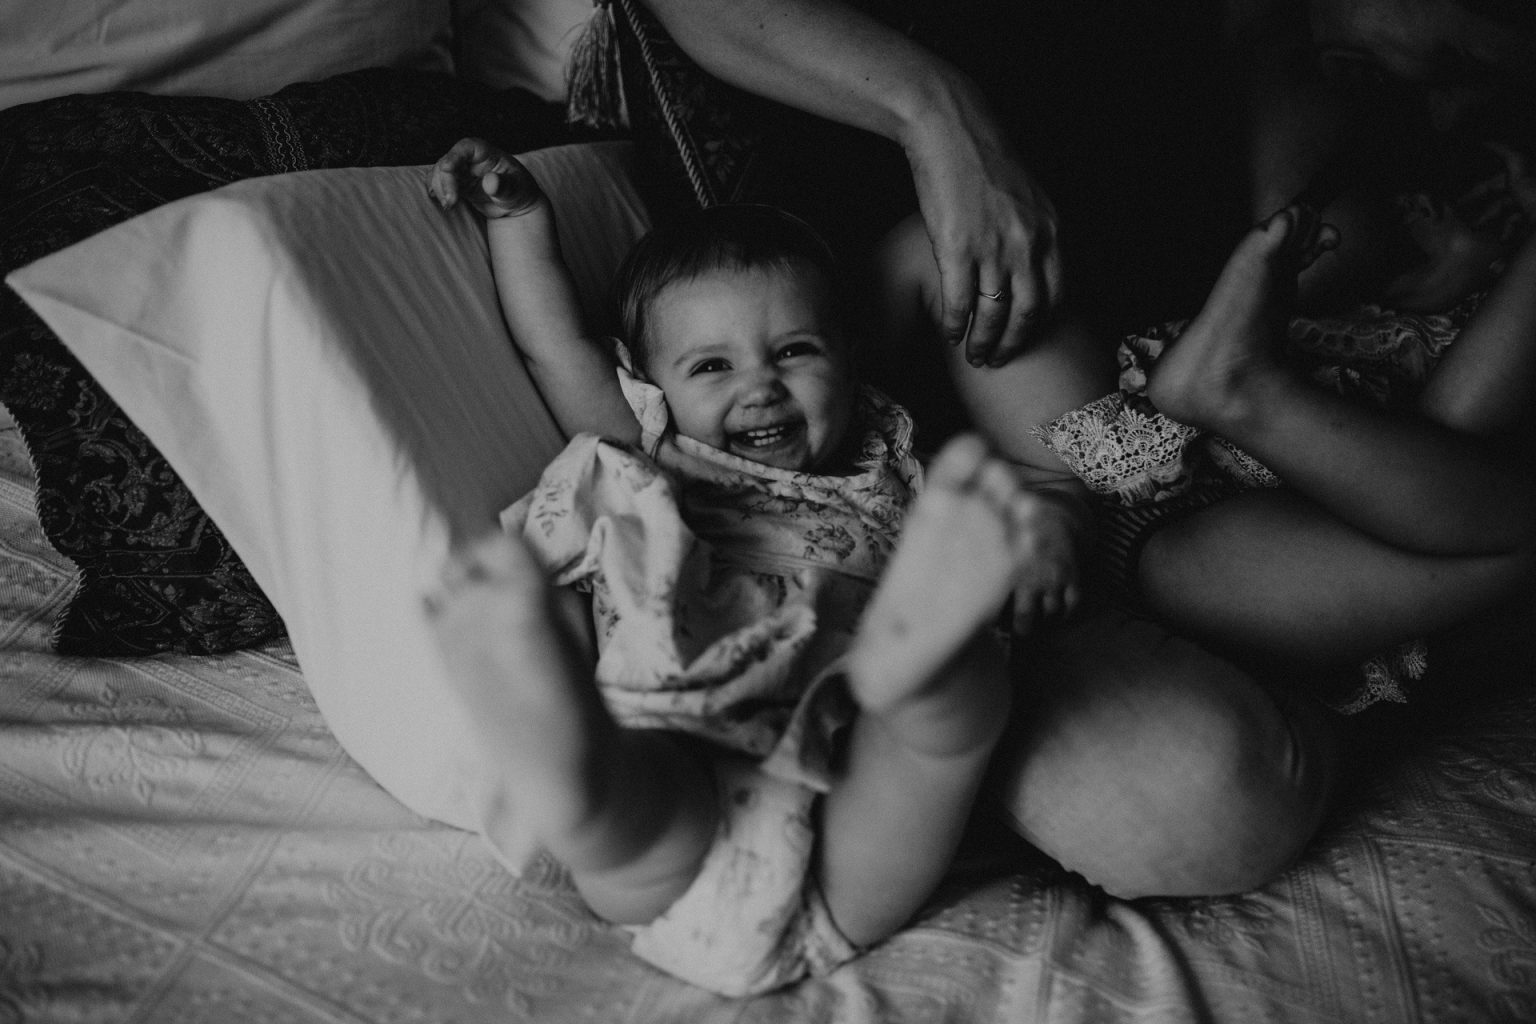 Girl being tickled on bed